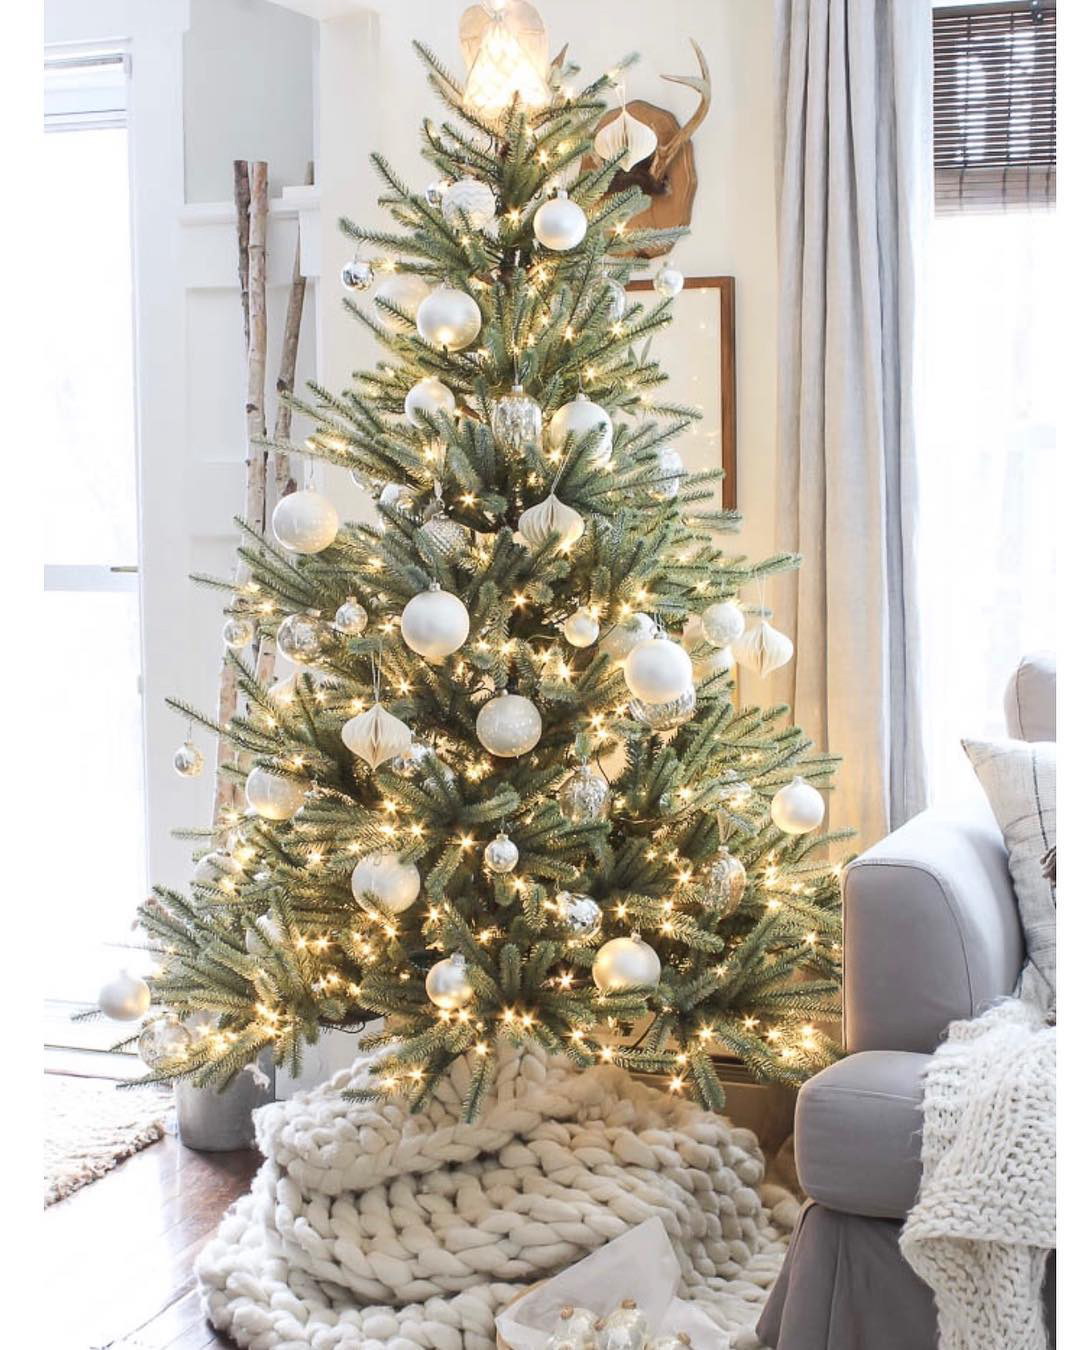 Simple & Elegant Christmas Tree   Rooms for Rent Blog